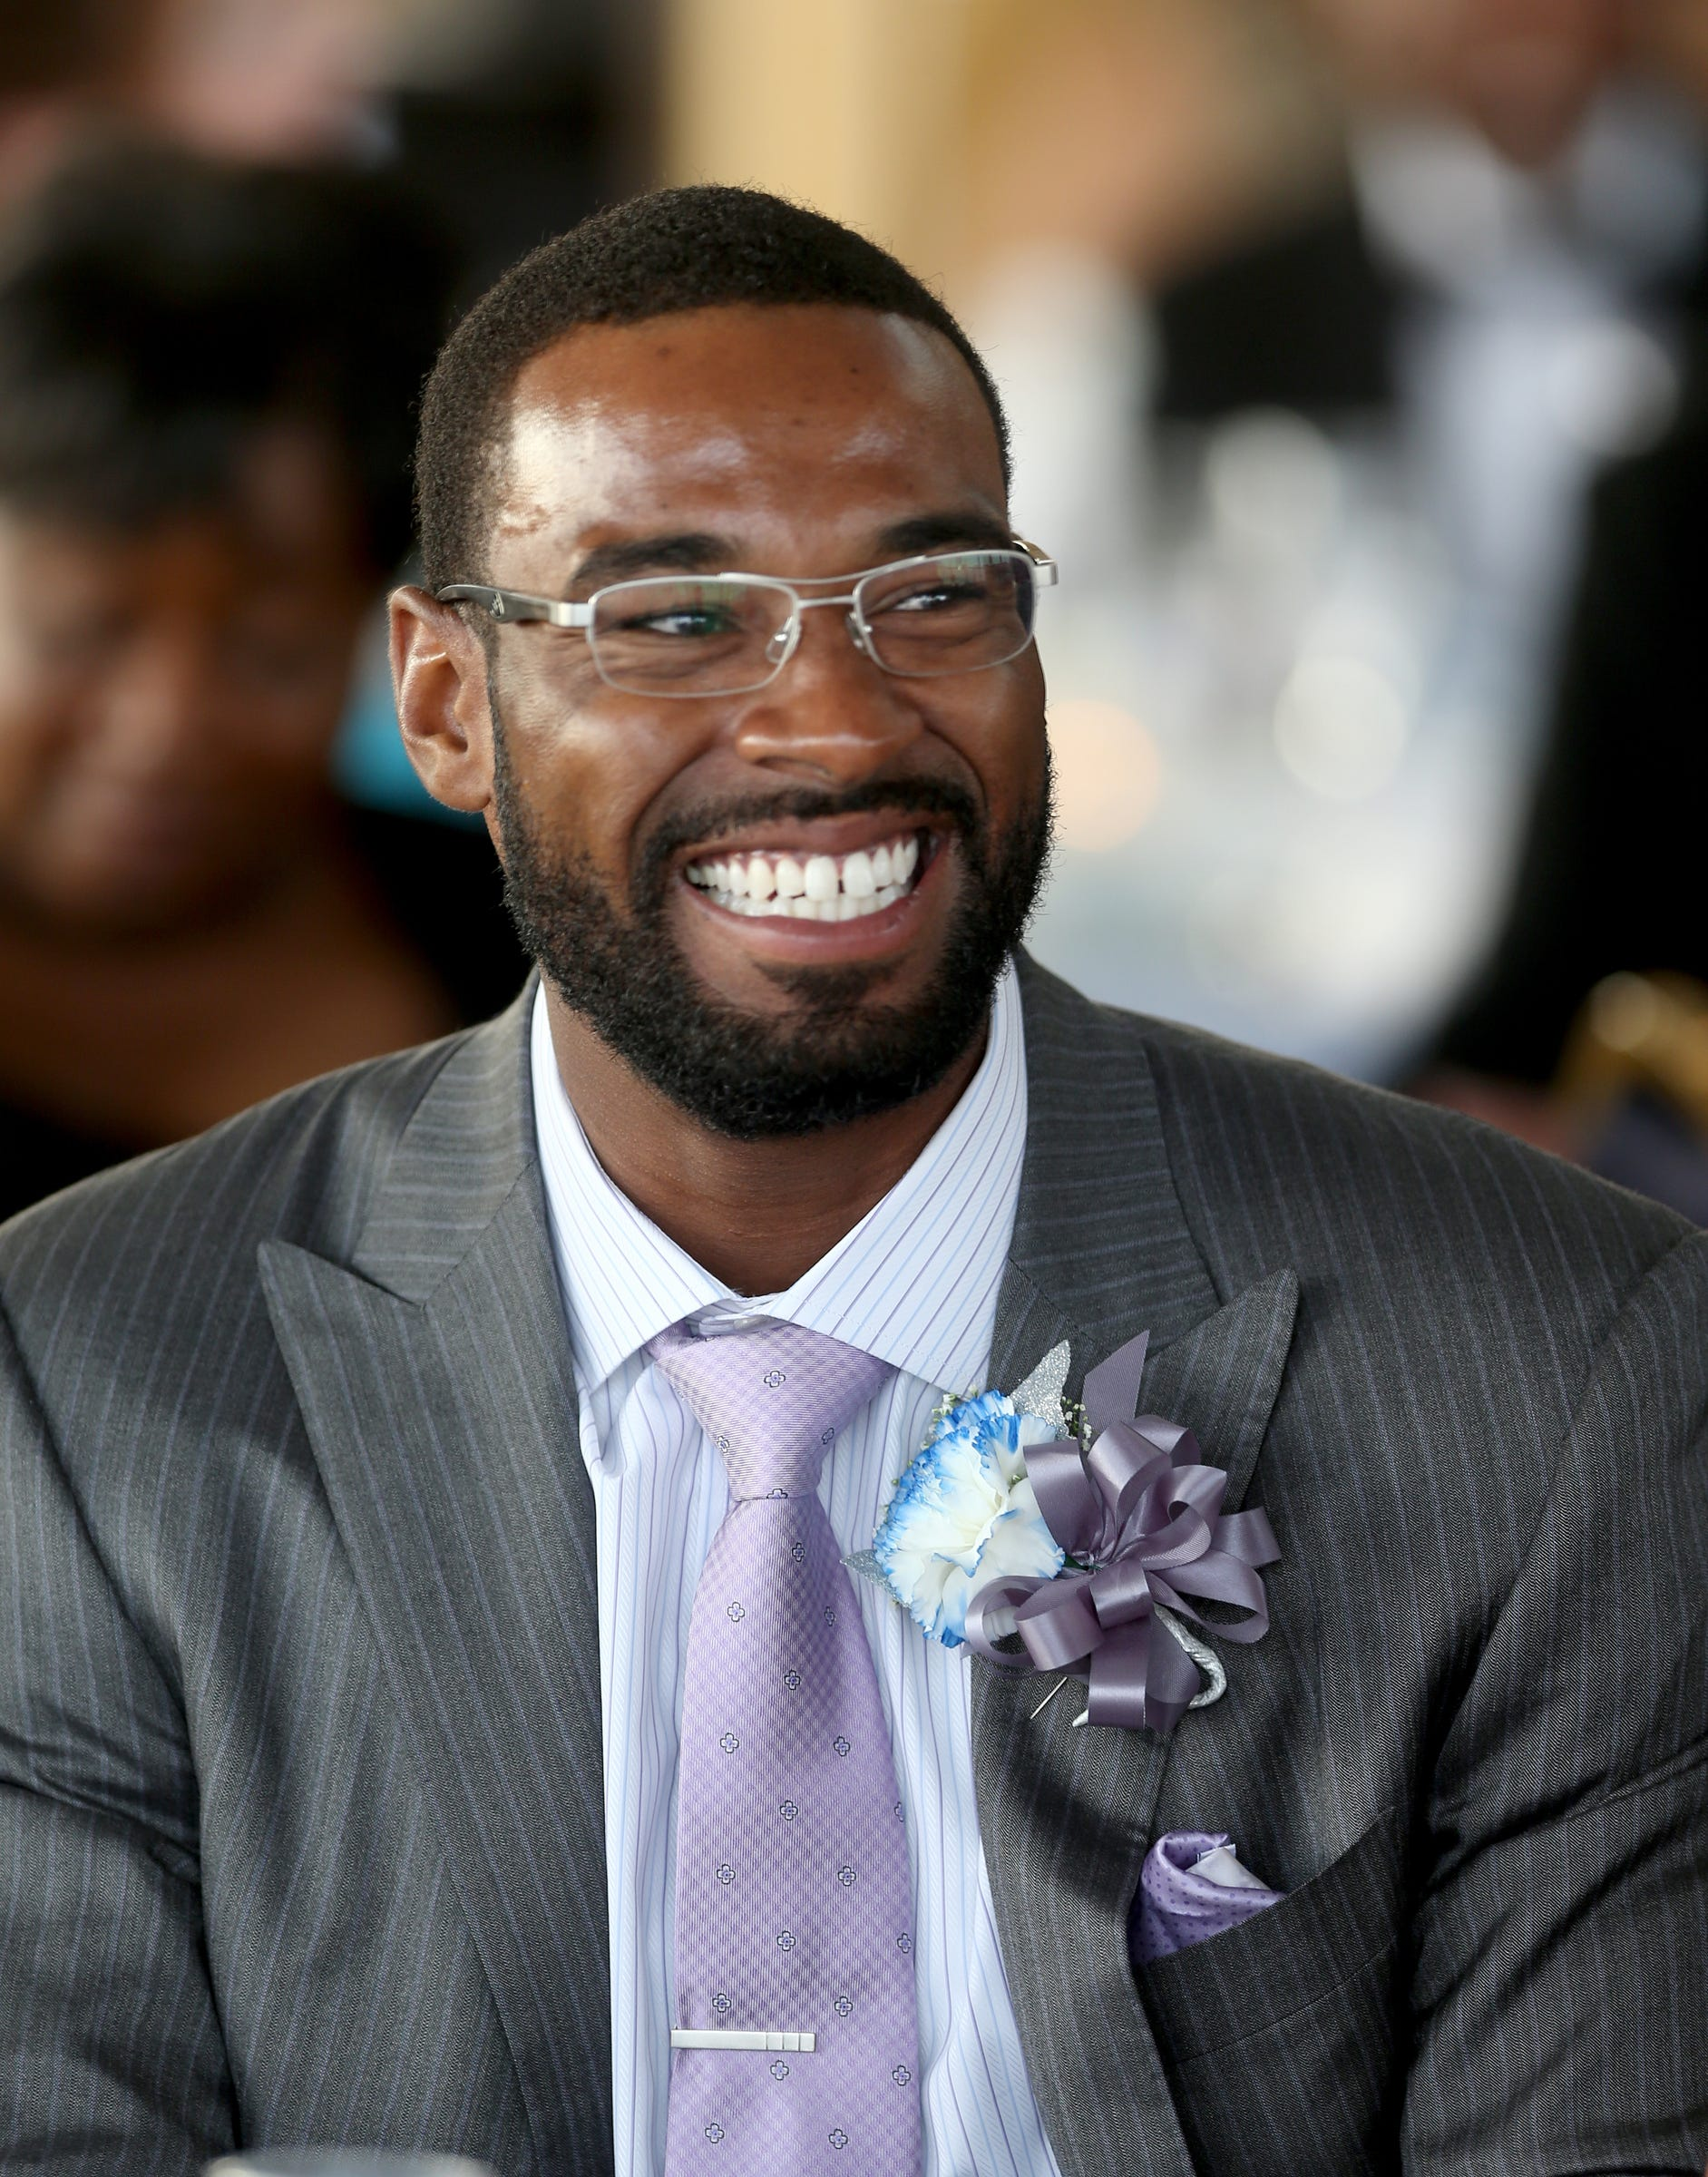 Ex-Lions WR Calvin Johnson is getting married Saturday